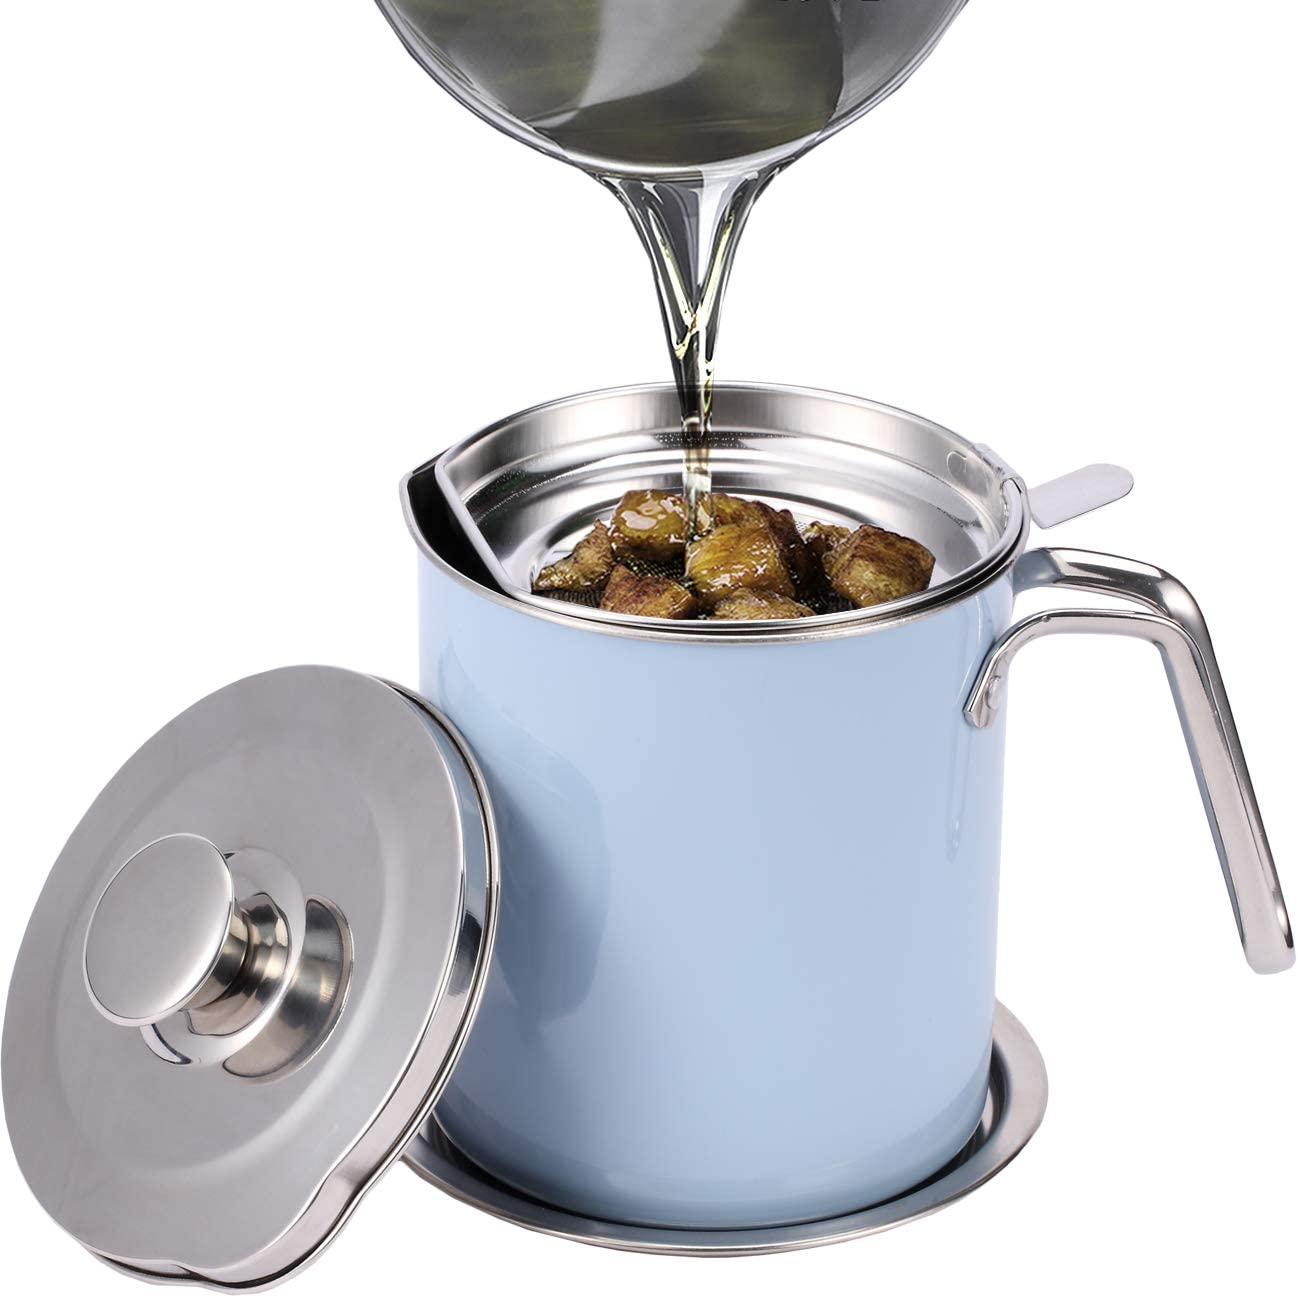 Eglaf 1.6L Stainless Steel Grease Strainer - Oil Container with Removable Filter - Dustproof Lid & Dripproof Base - Storage Can for Reusable Cooking Frying Oil, Fat (Blue)